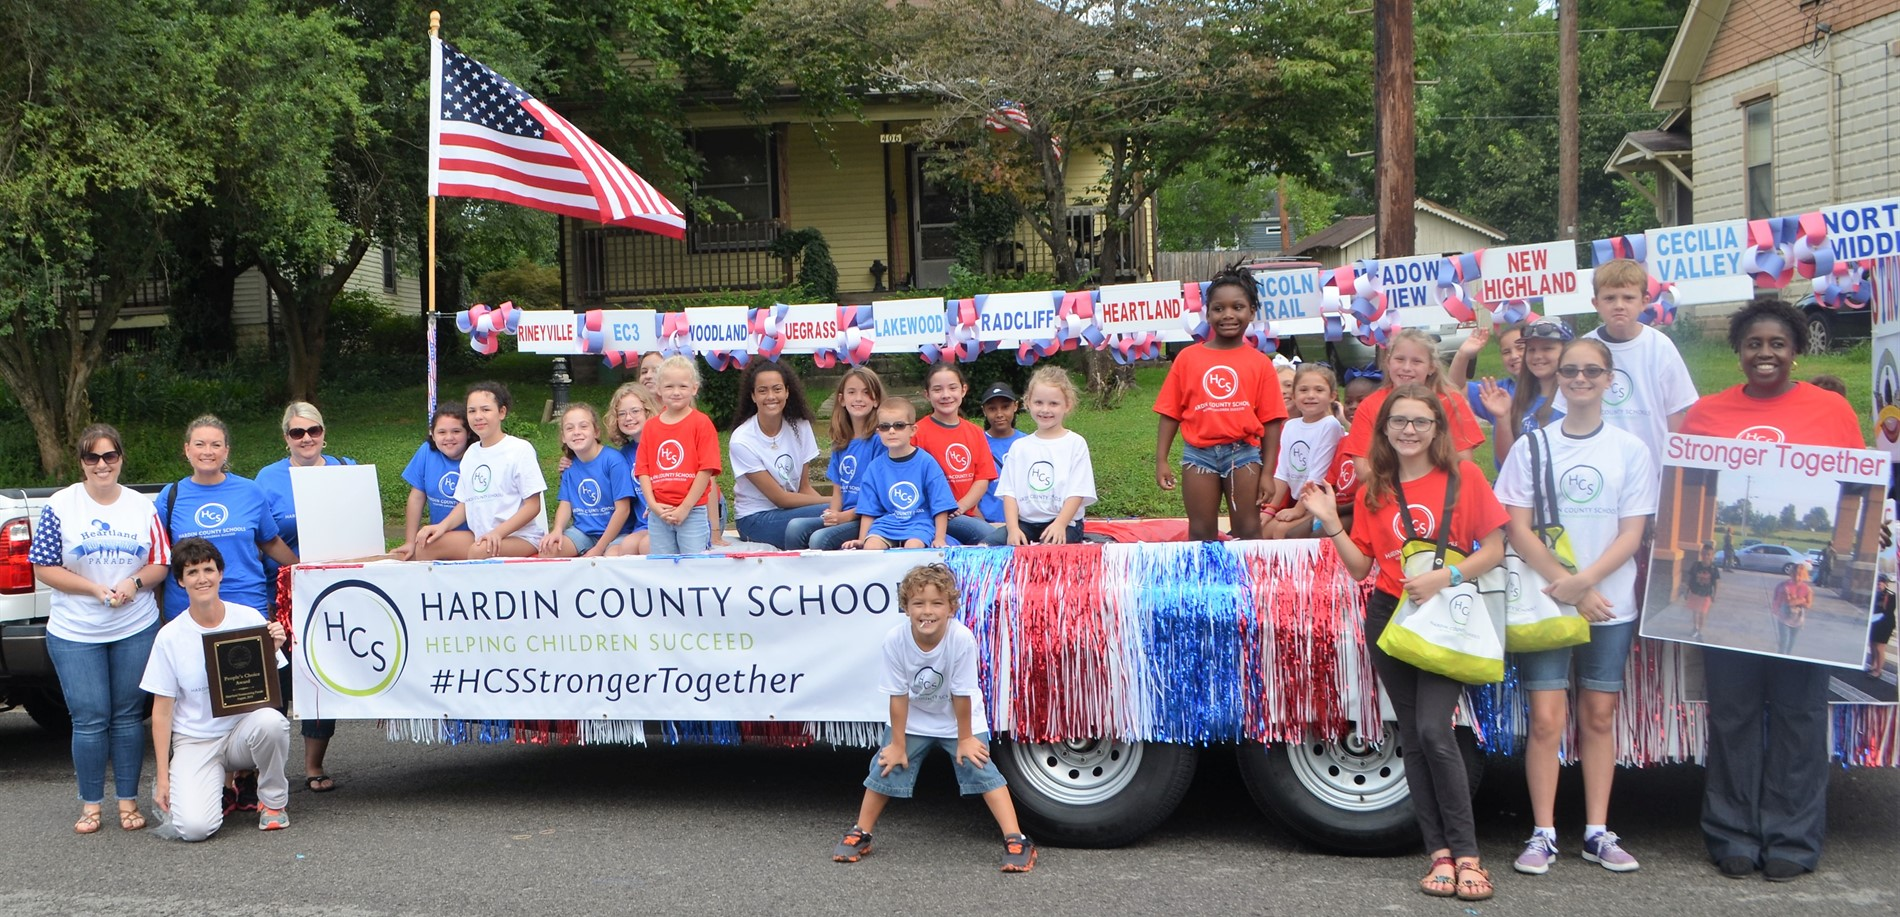 The HCS Float and its students earned the People's Choice Award at the 2018 Heartland Parade.